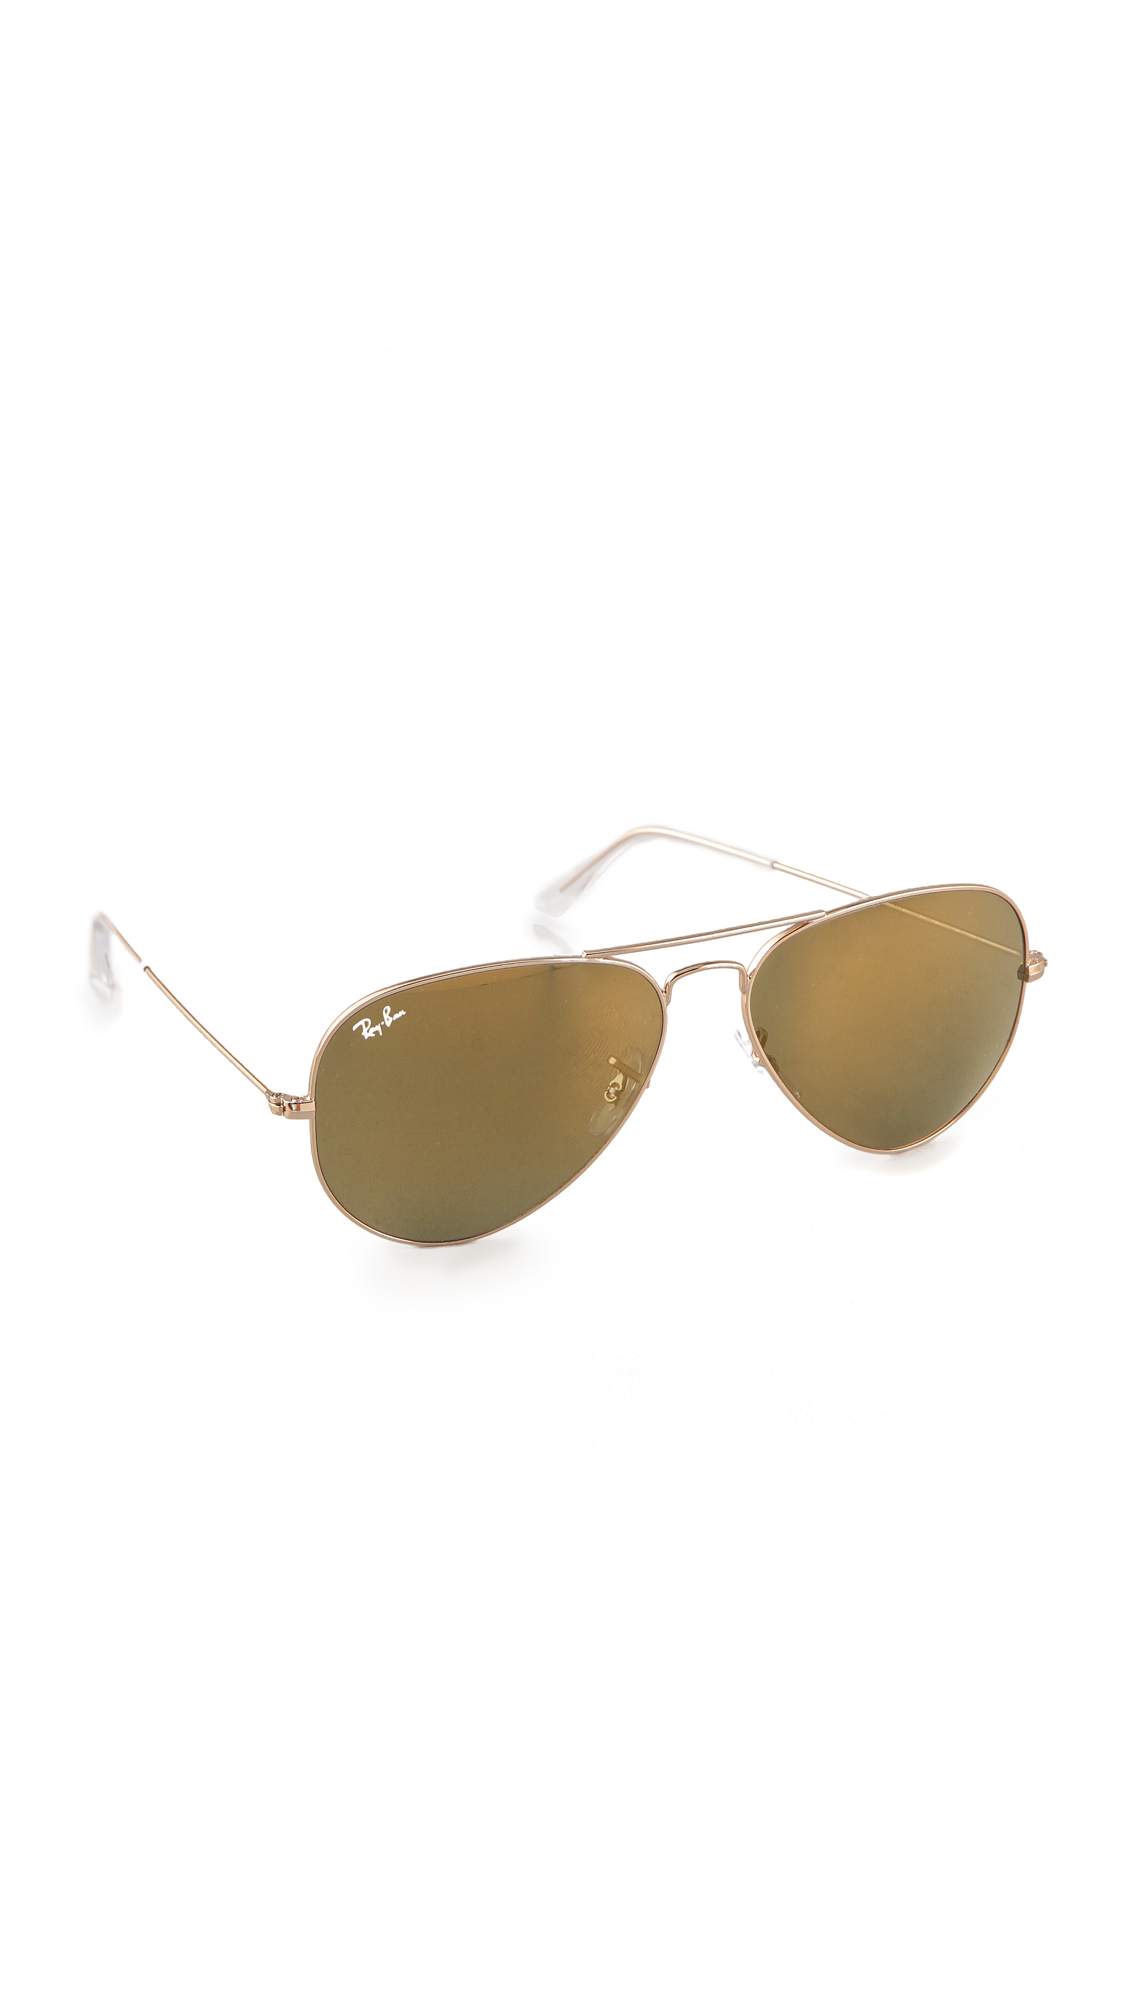 4f79832d2a2 Lunettes Ray Ban Mirror